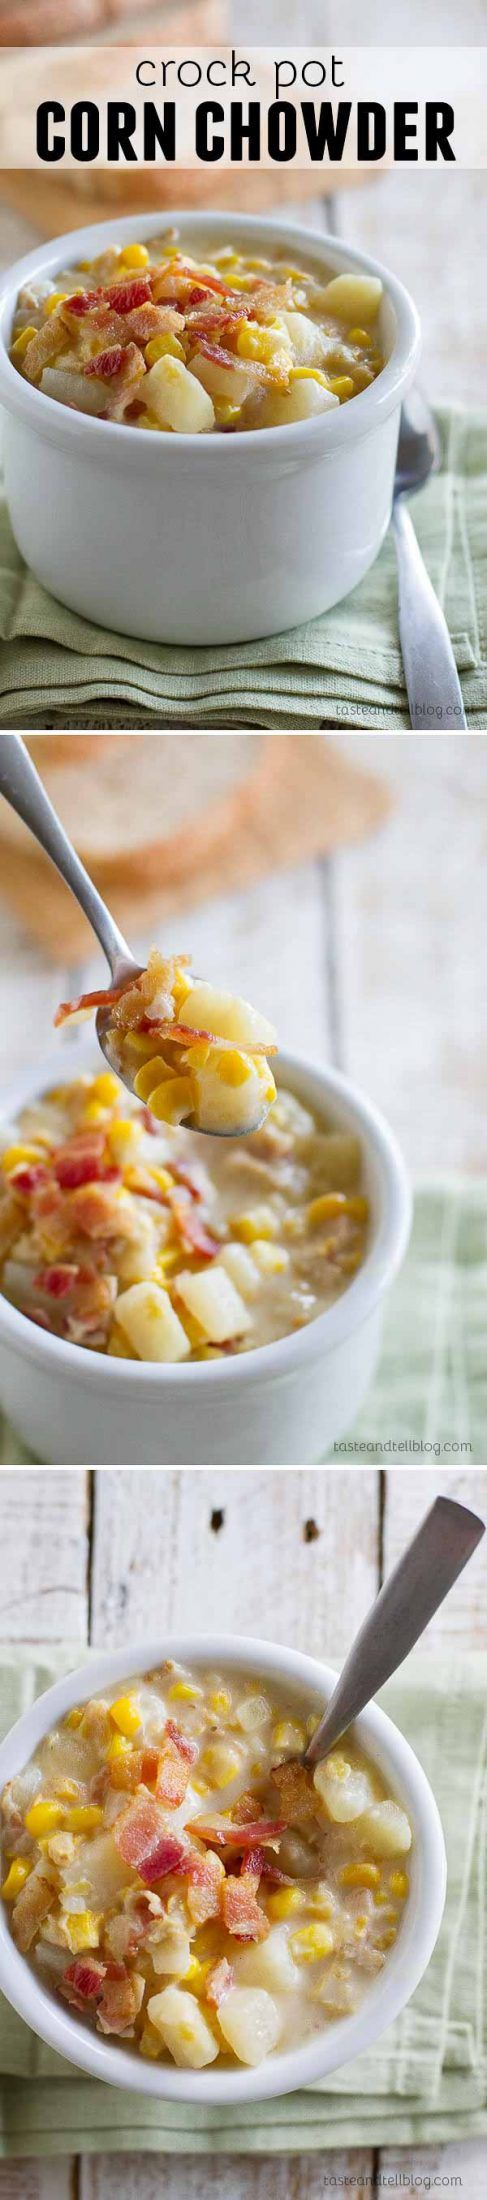 My mom's recipe for Crock Pot Corn Chowder - you can't go wrong when it's mom's recipe!: